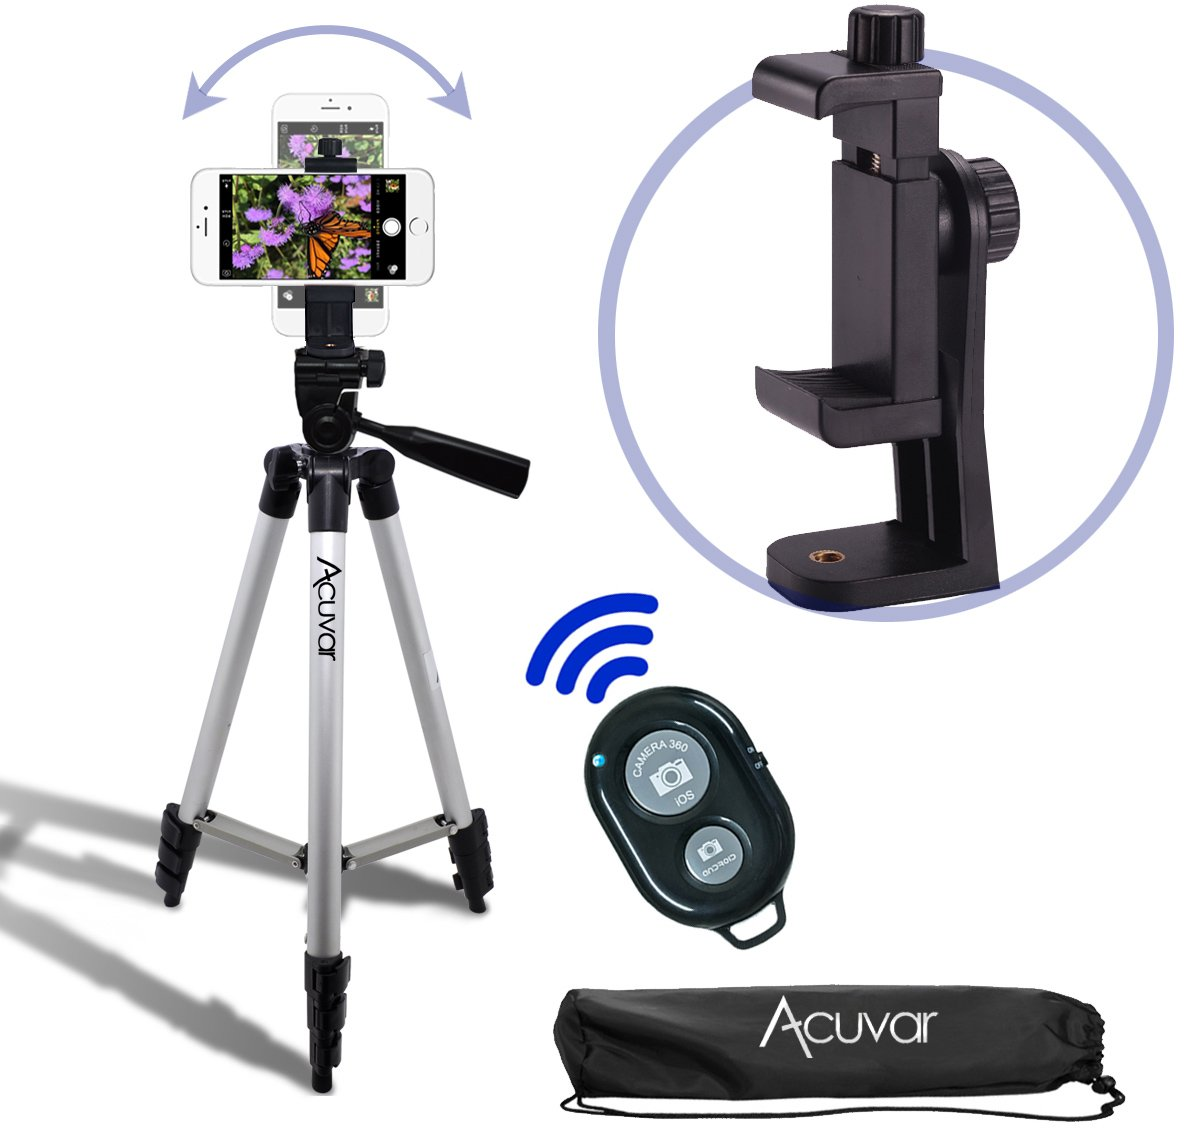 "Acuvar 50"" Smartphone/Camera Tripod with Rotating Mount & Bluetooth Camera Remote. Fits iPhone X, 8, 8+, 7, 7 Plus, 6, 6 Plus, 5s Samsung Galaxy, Android, etc."